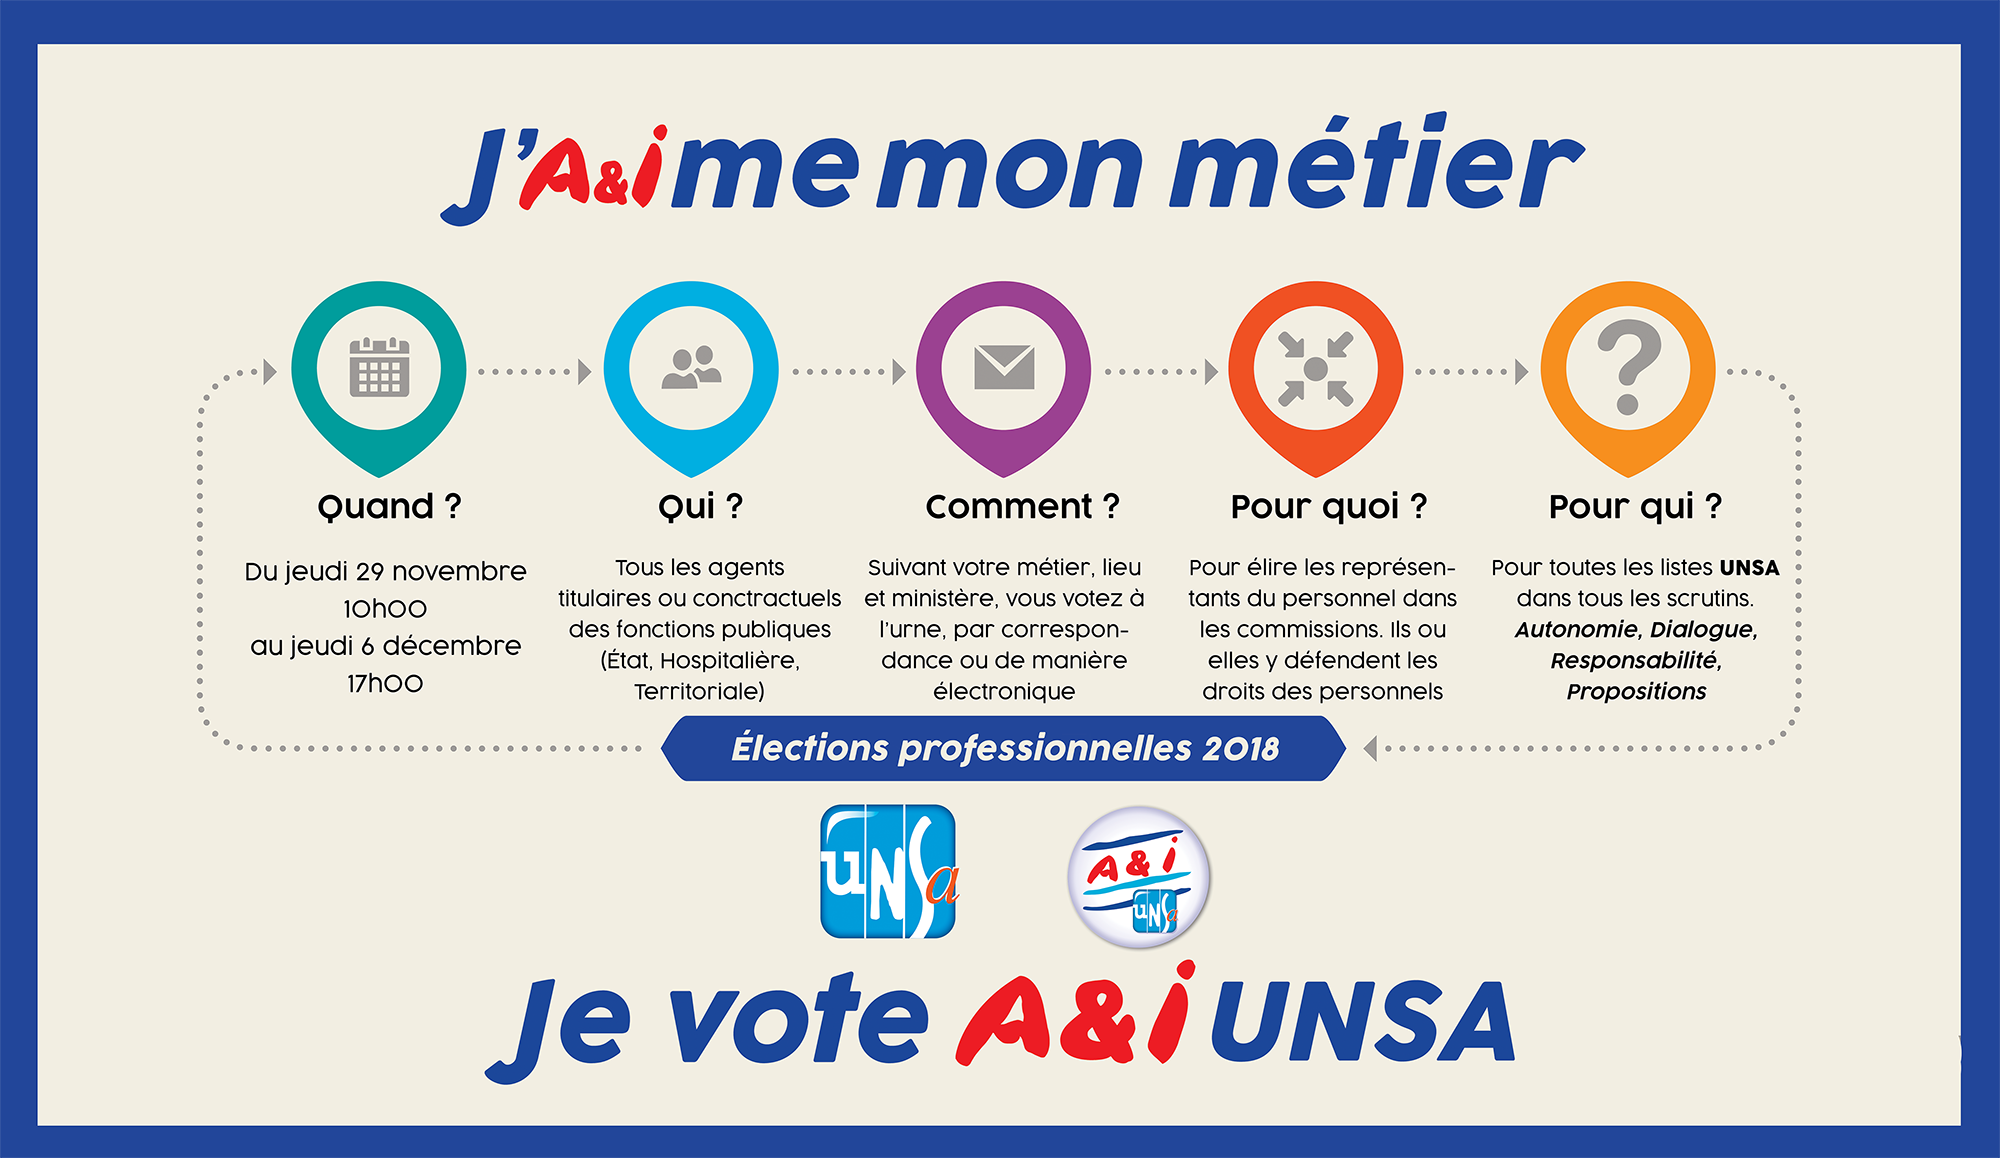 http://lettre.aeti-unsa.org/IMG/UserFiles/Files/Infographie_vote.png